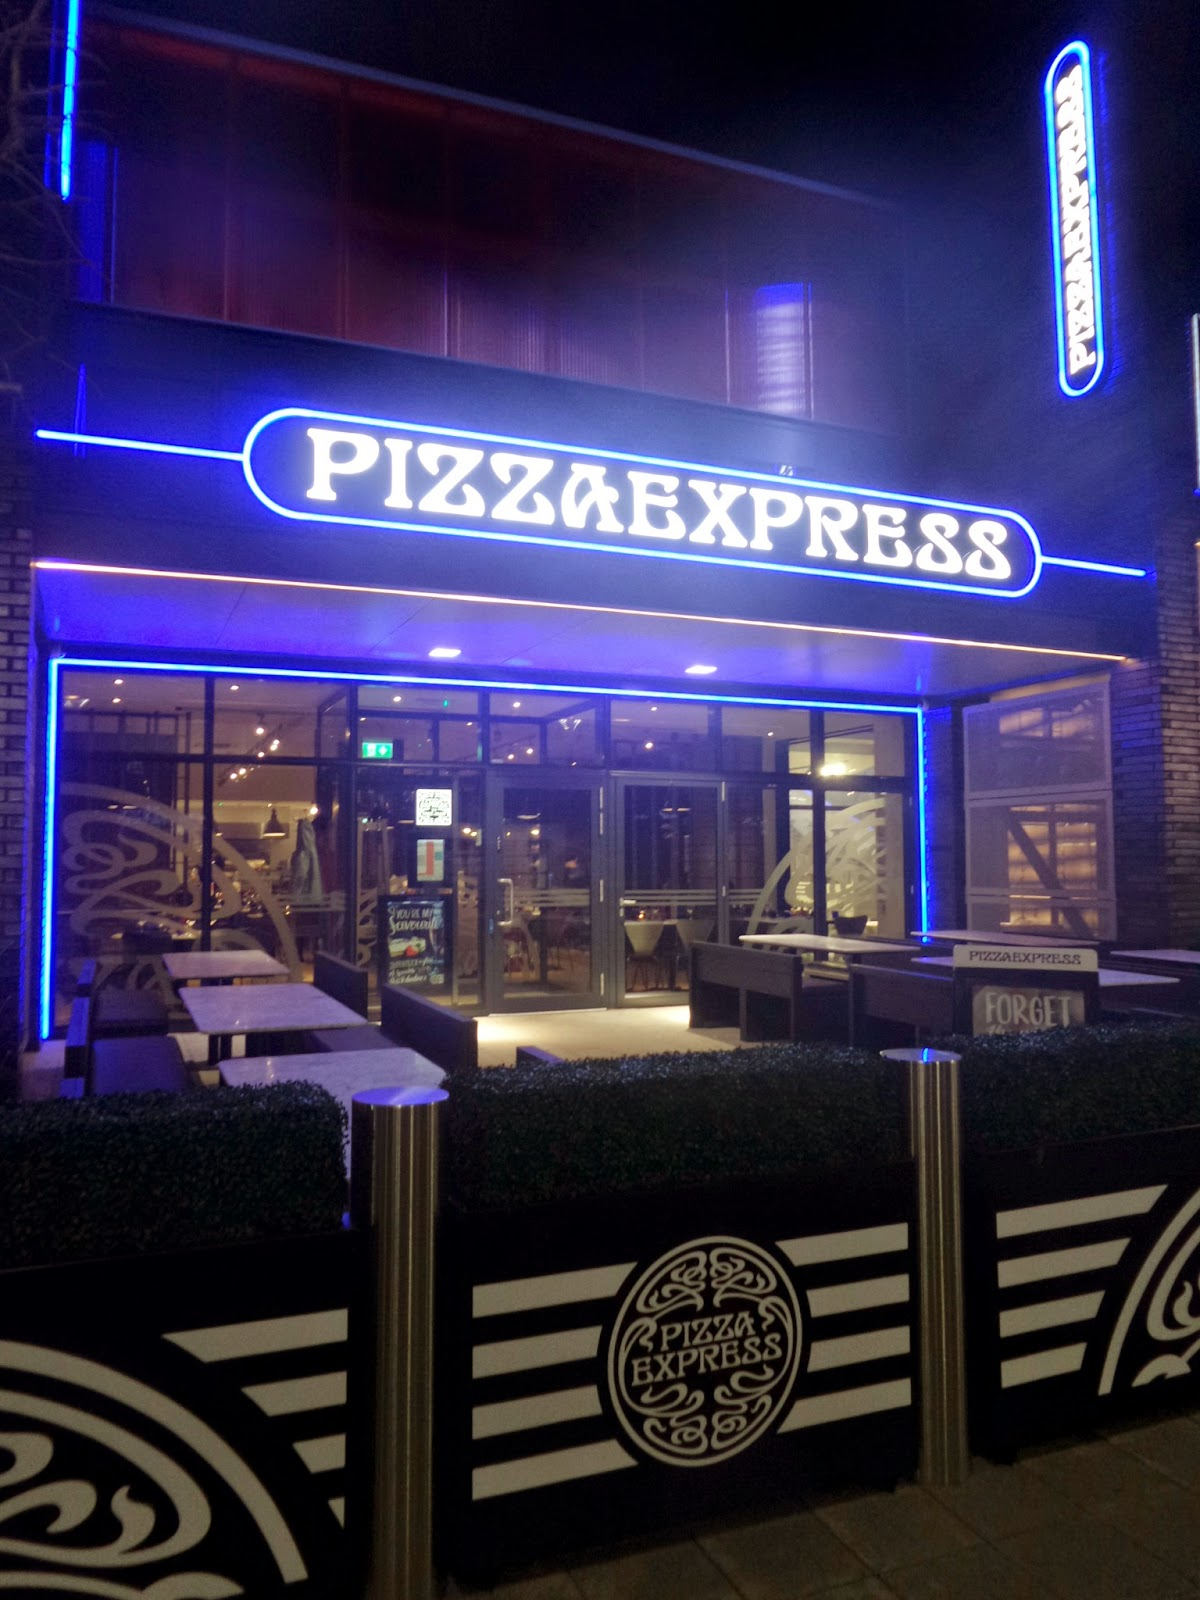 Pizza Express at The MK dons Stadium